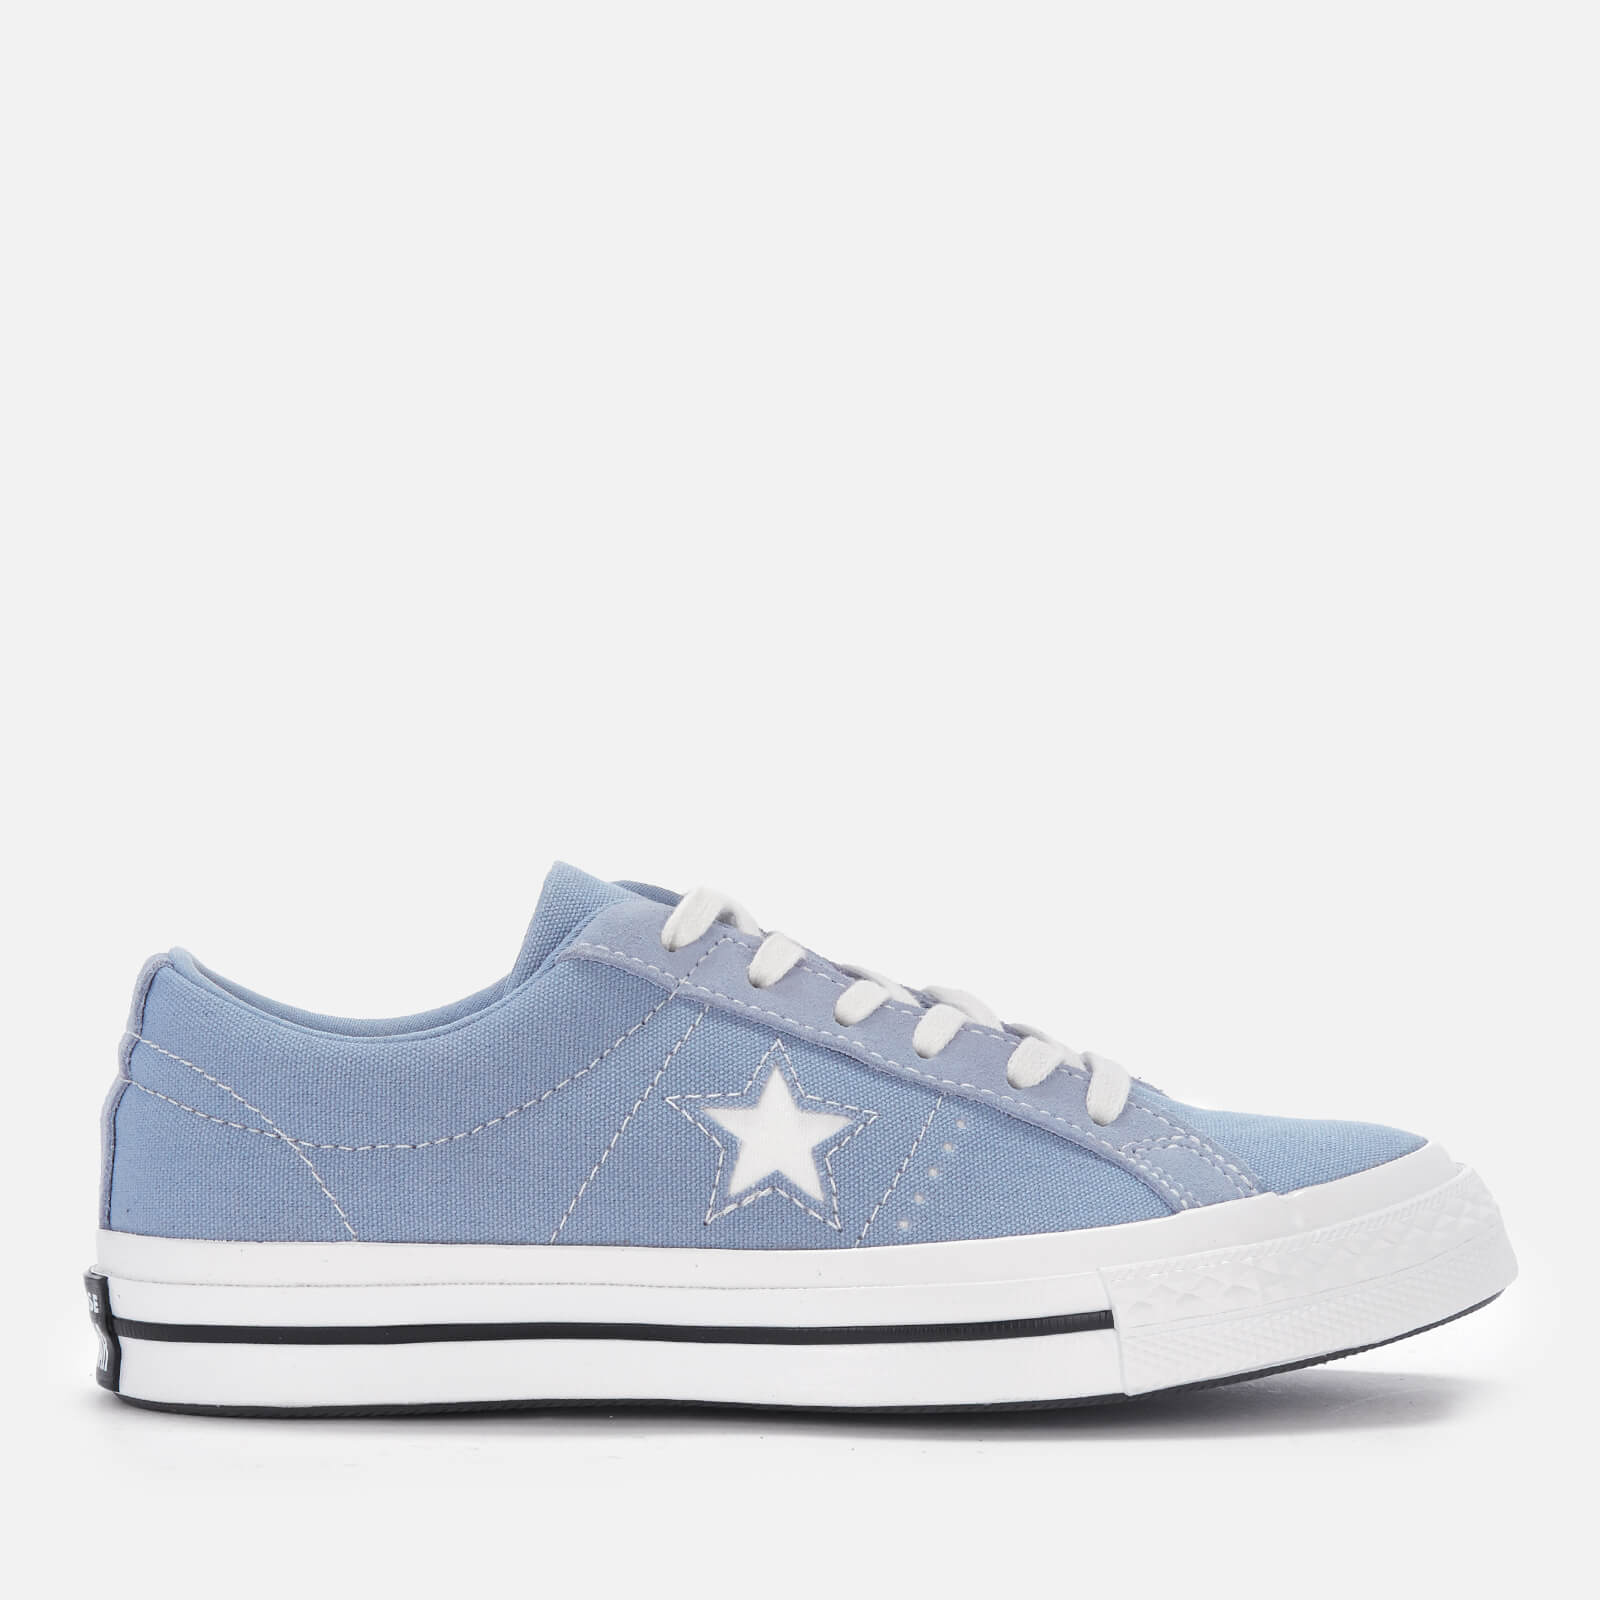 92d02069328d98 Converse Women s One Star Ox Trainers - Indigo Fog White Black ...